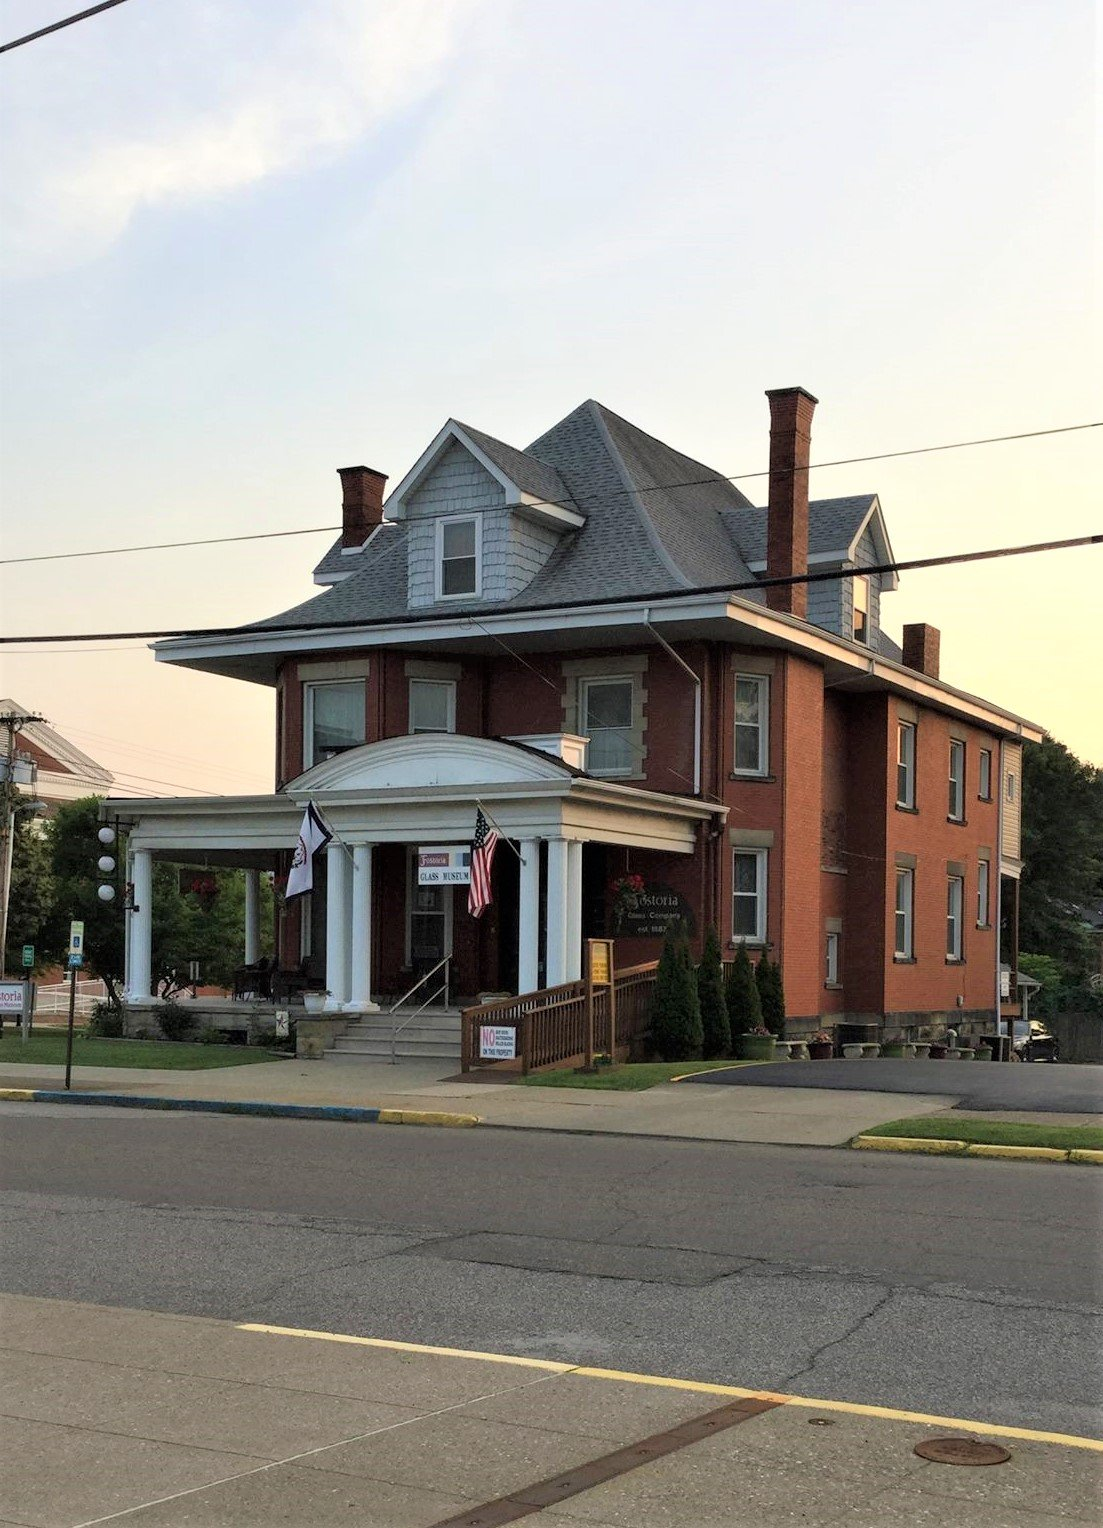 Exterior view of the Fostoria Glass Museum looking west across Tomlinson Avenue.